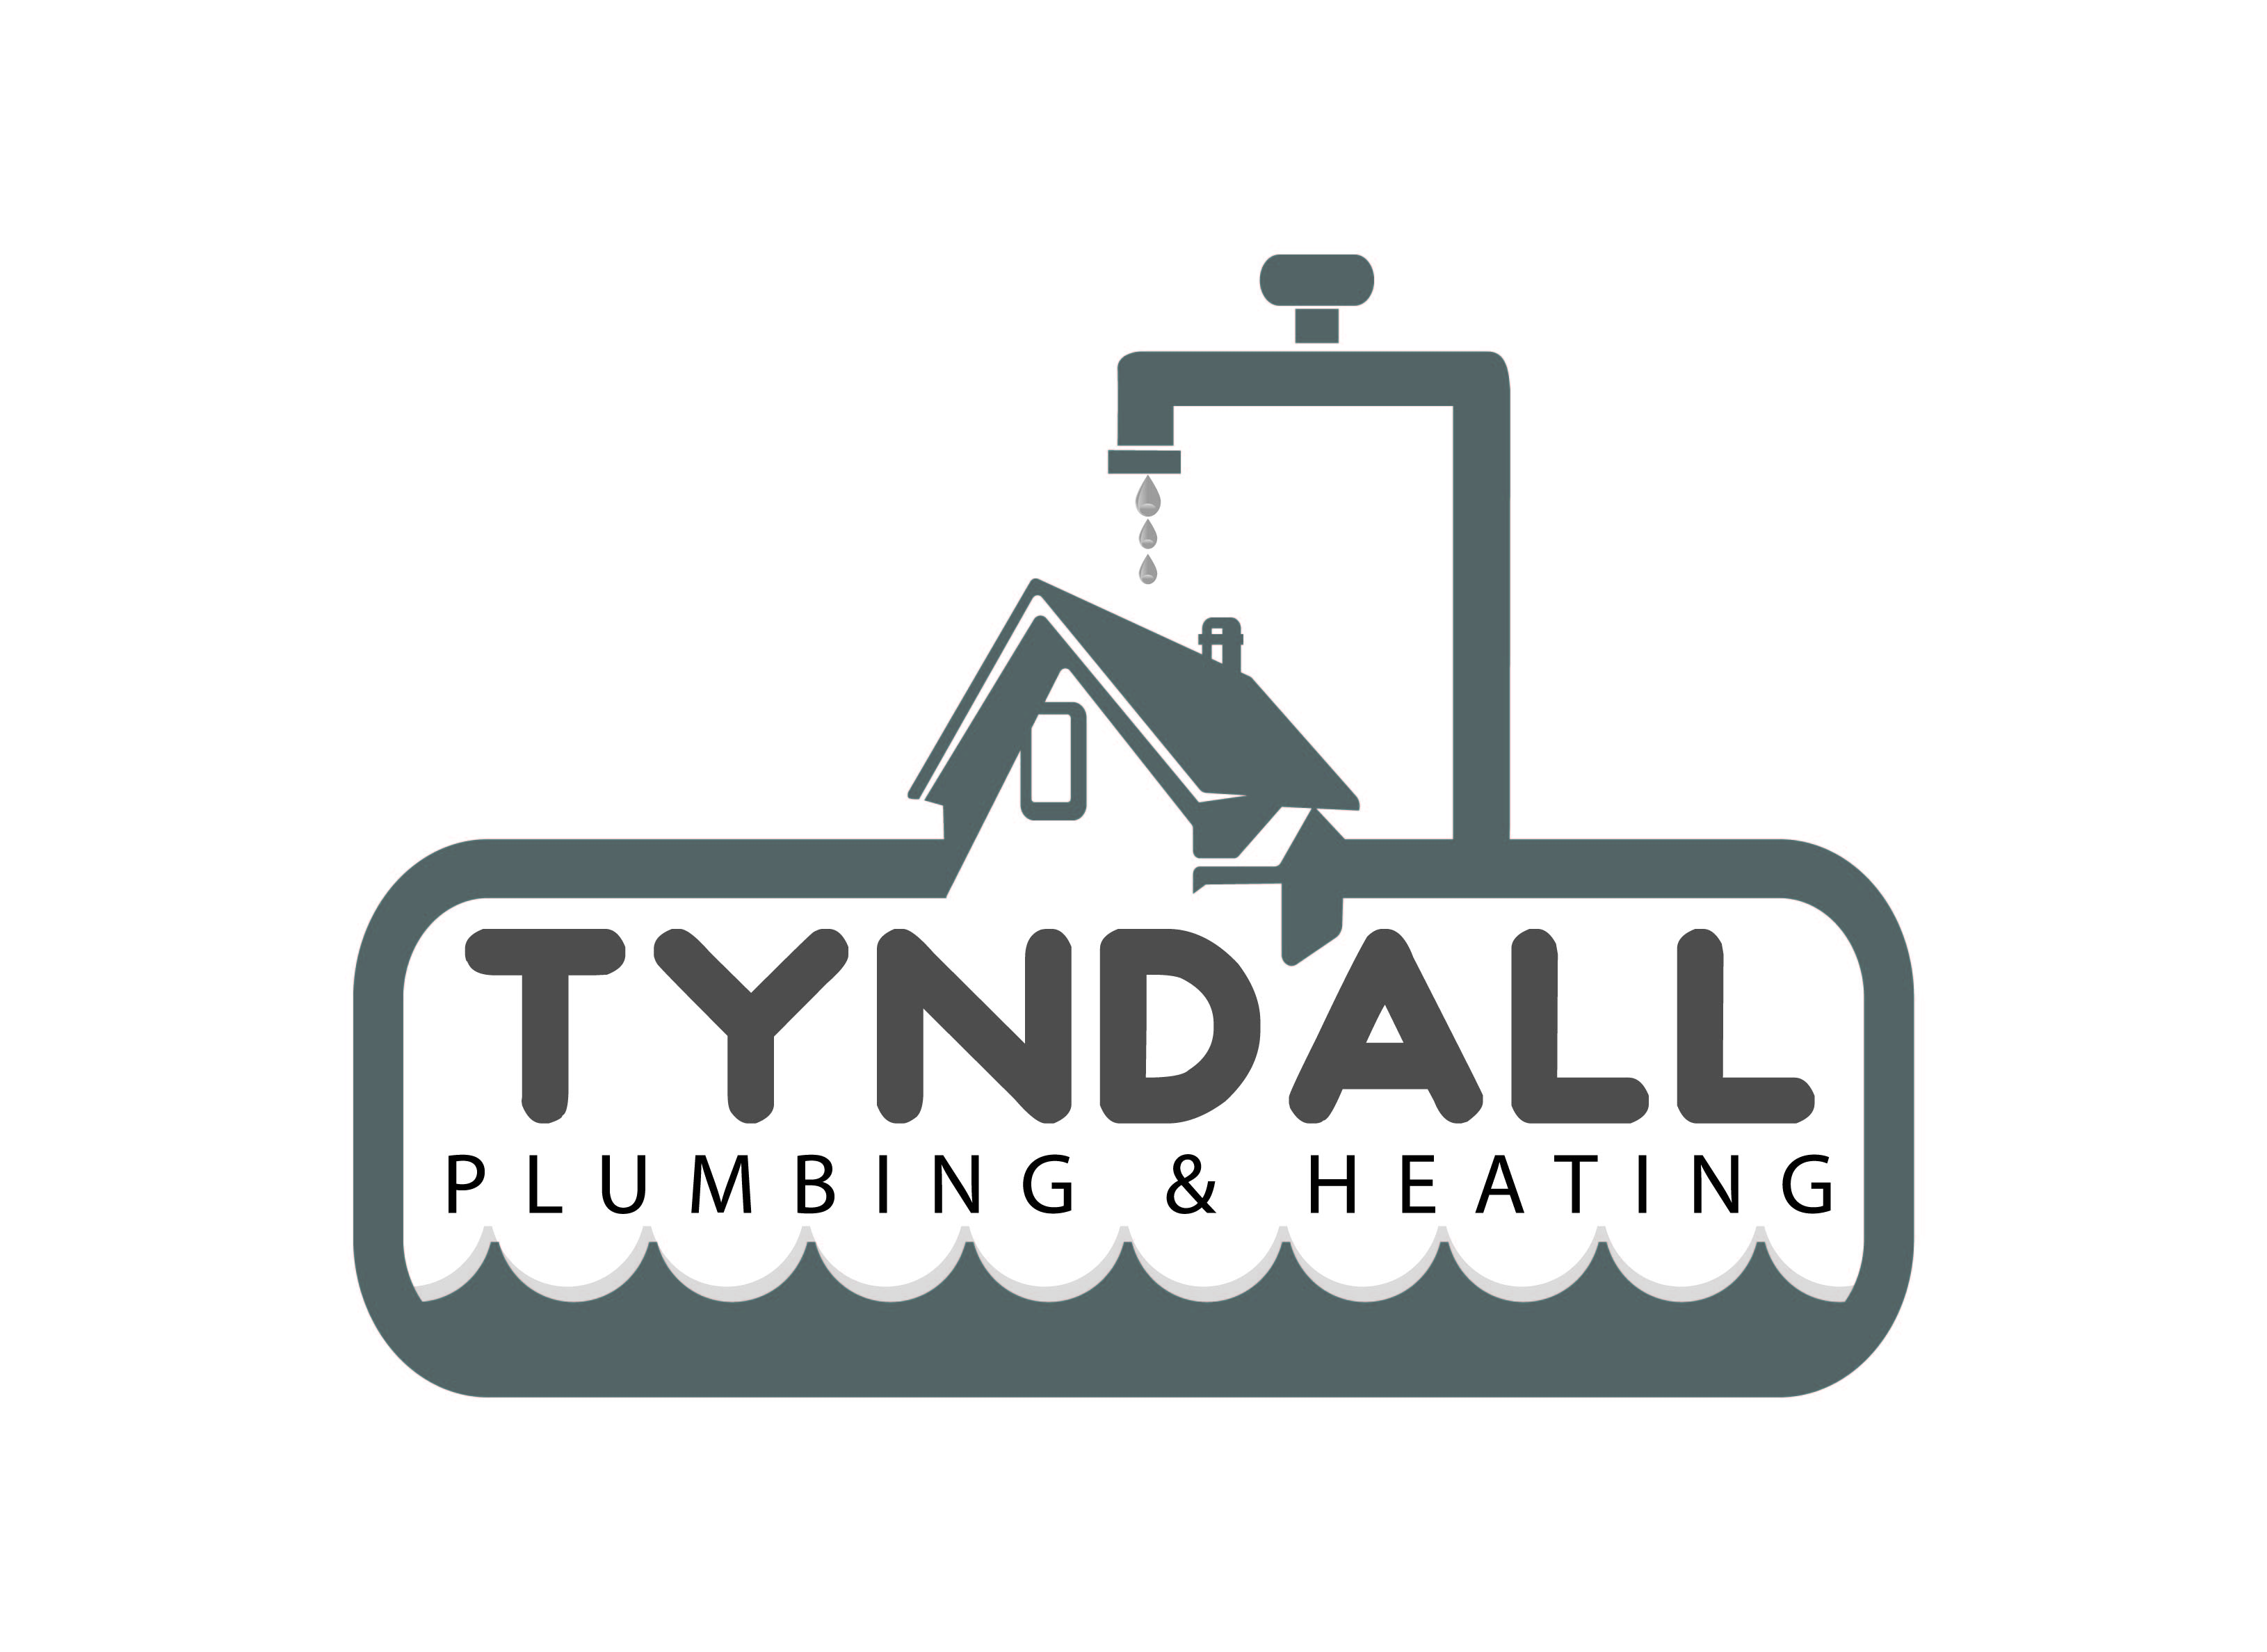 Logo Design by Private User - Entry No. 112 in the Logo Design Contest Imaginative Logo Design for Tyndall Plumbing & Heating.